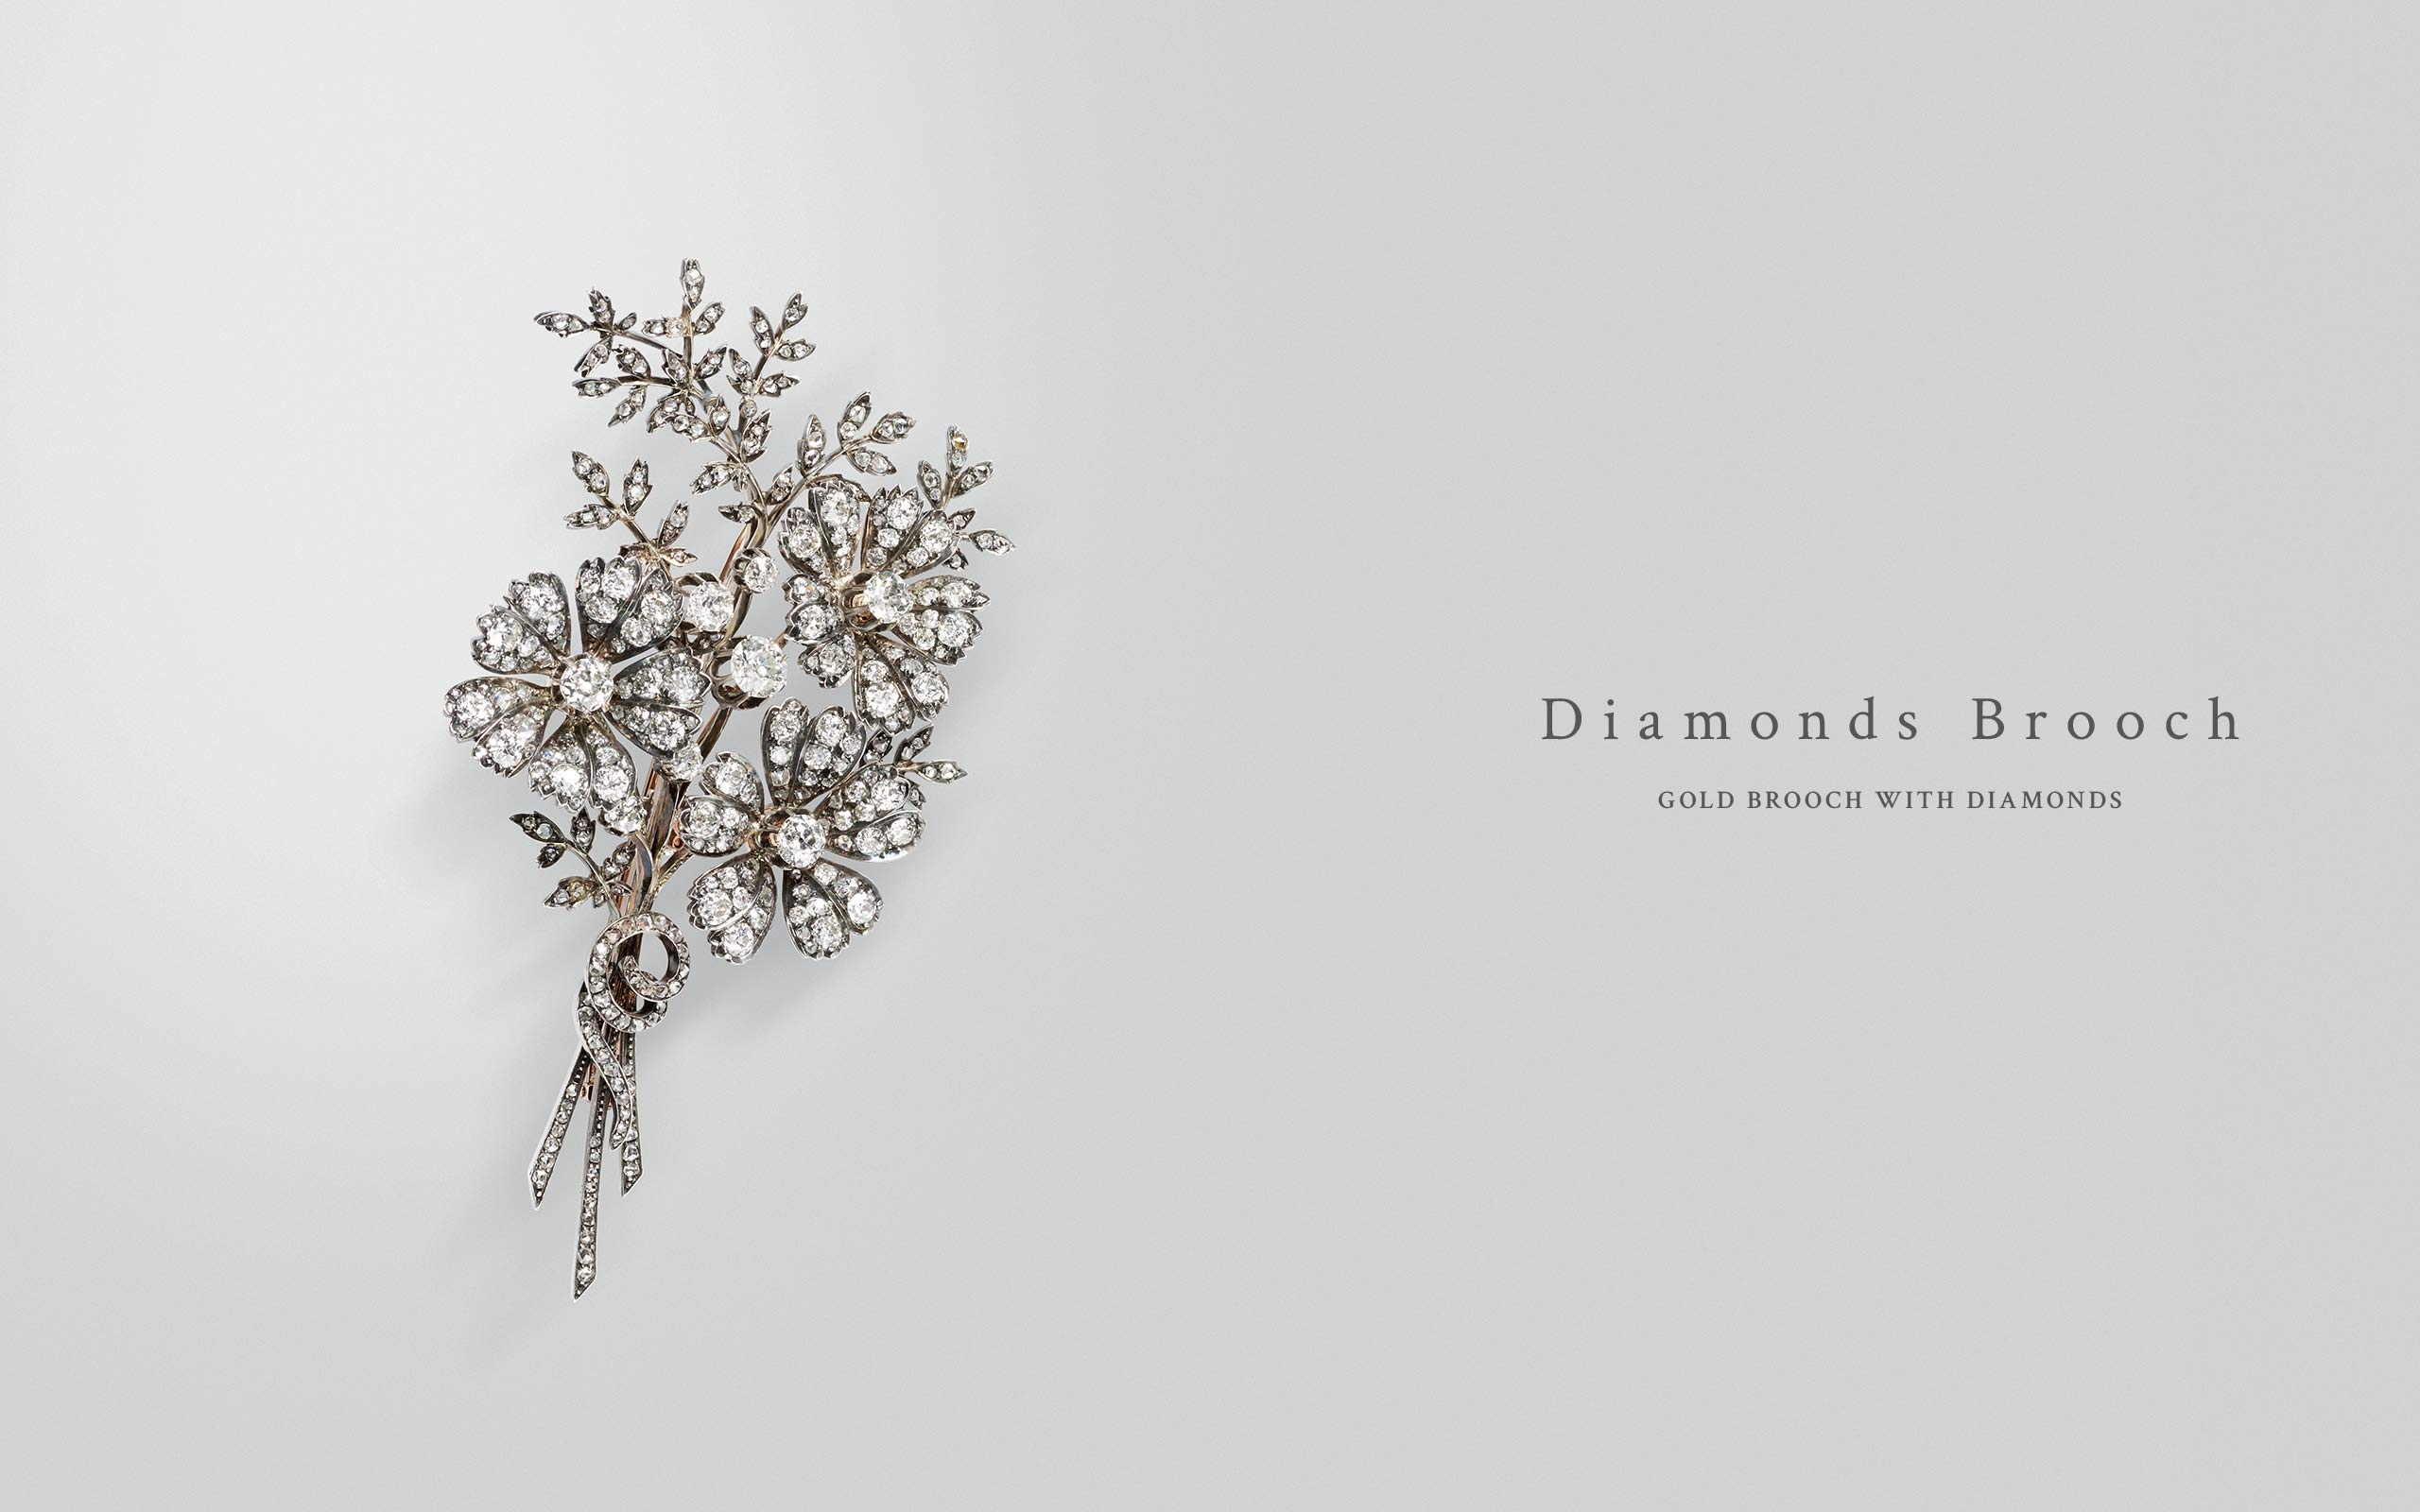 Diamonds Brooch 03 | Maria Gaspari